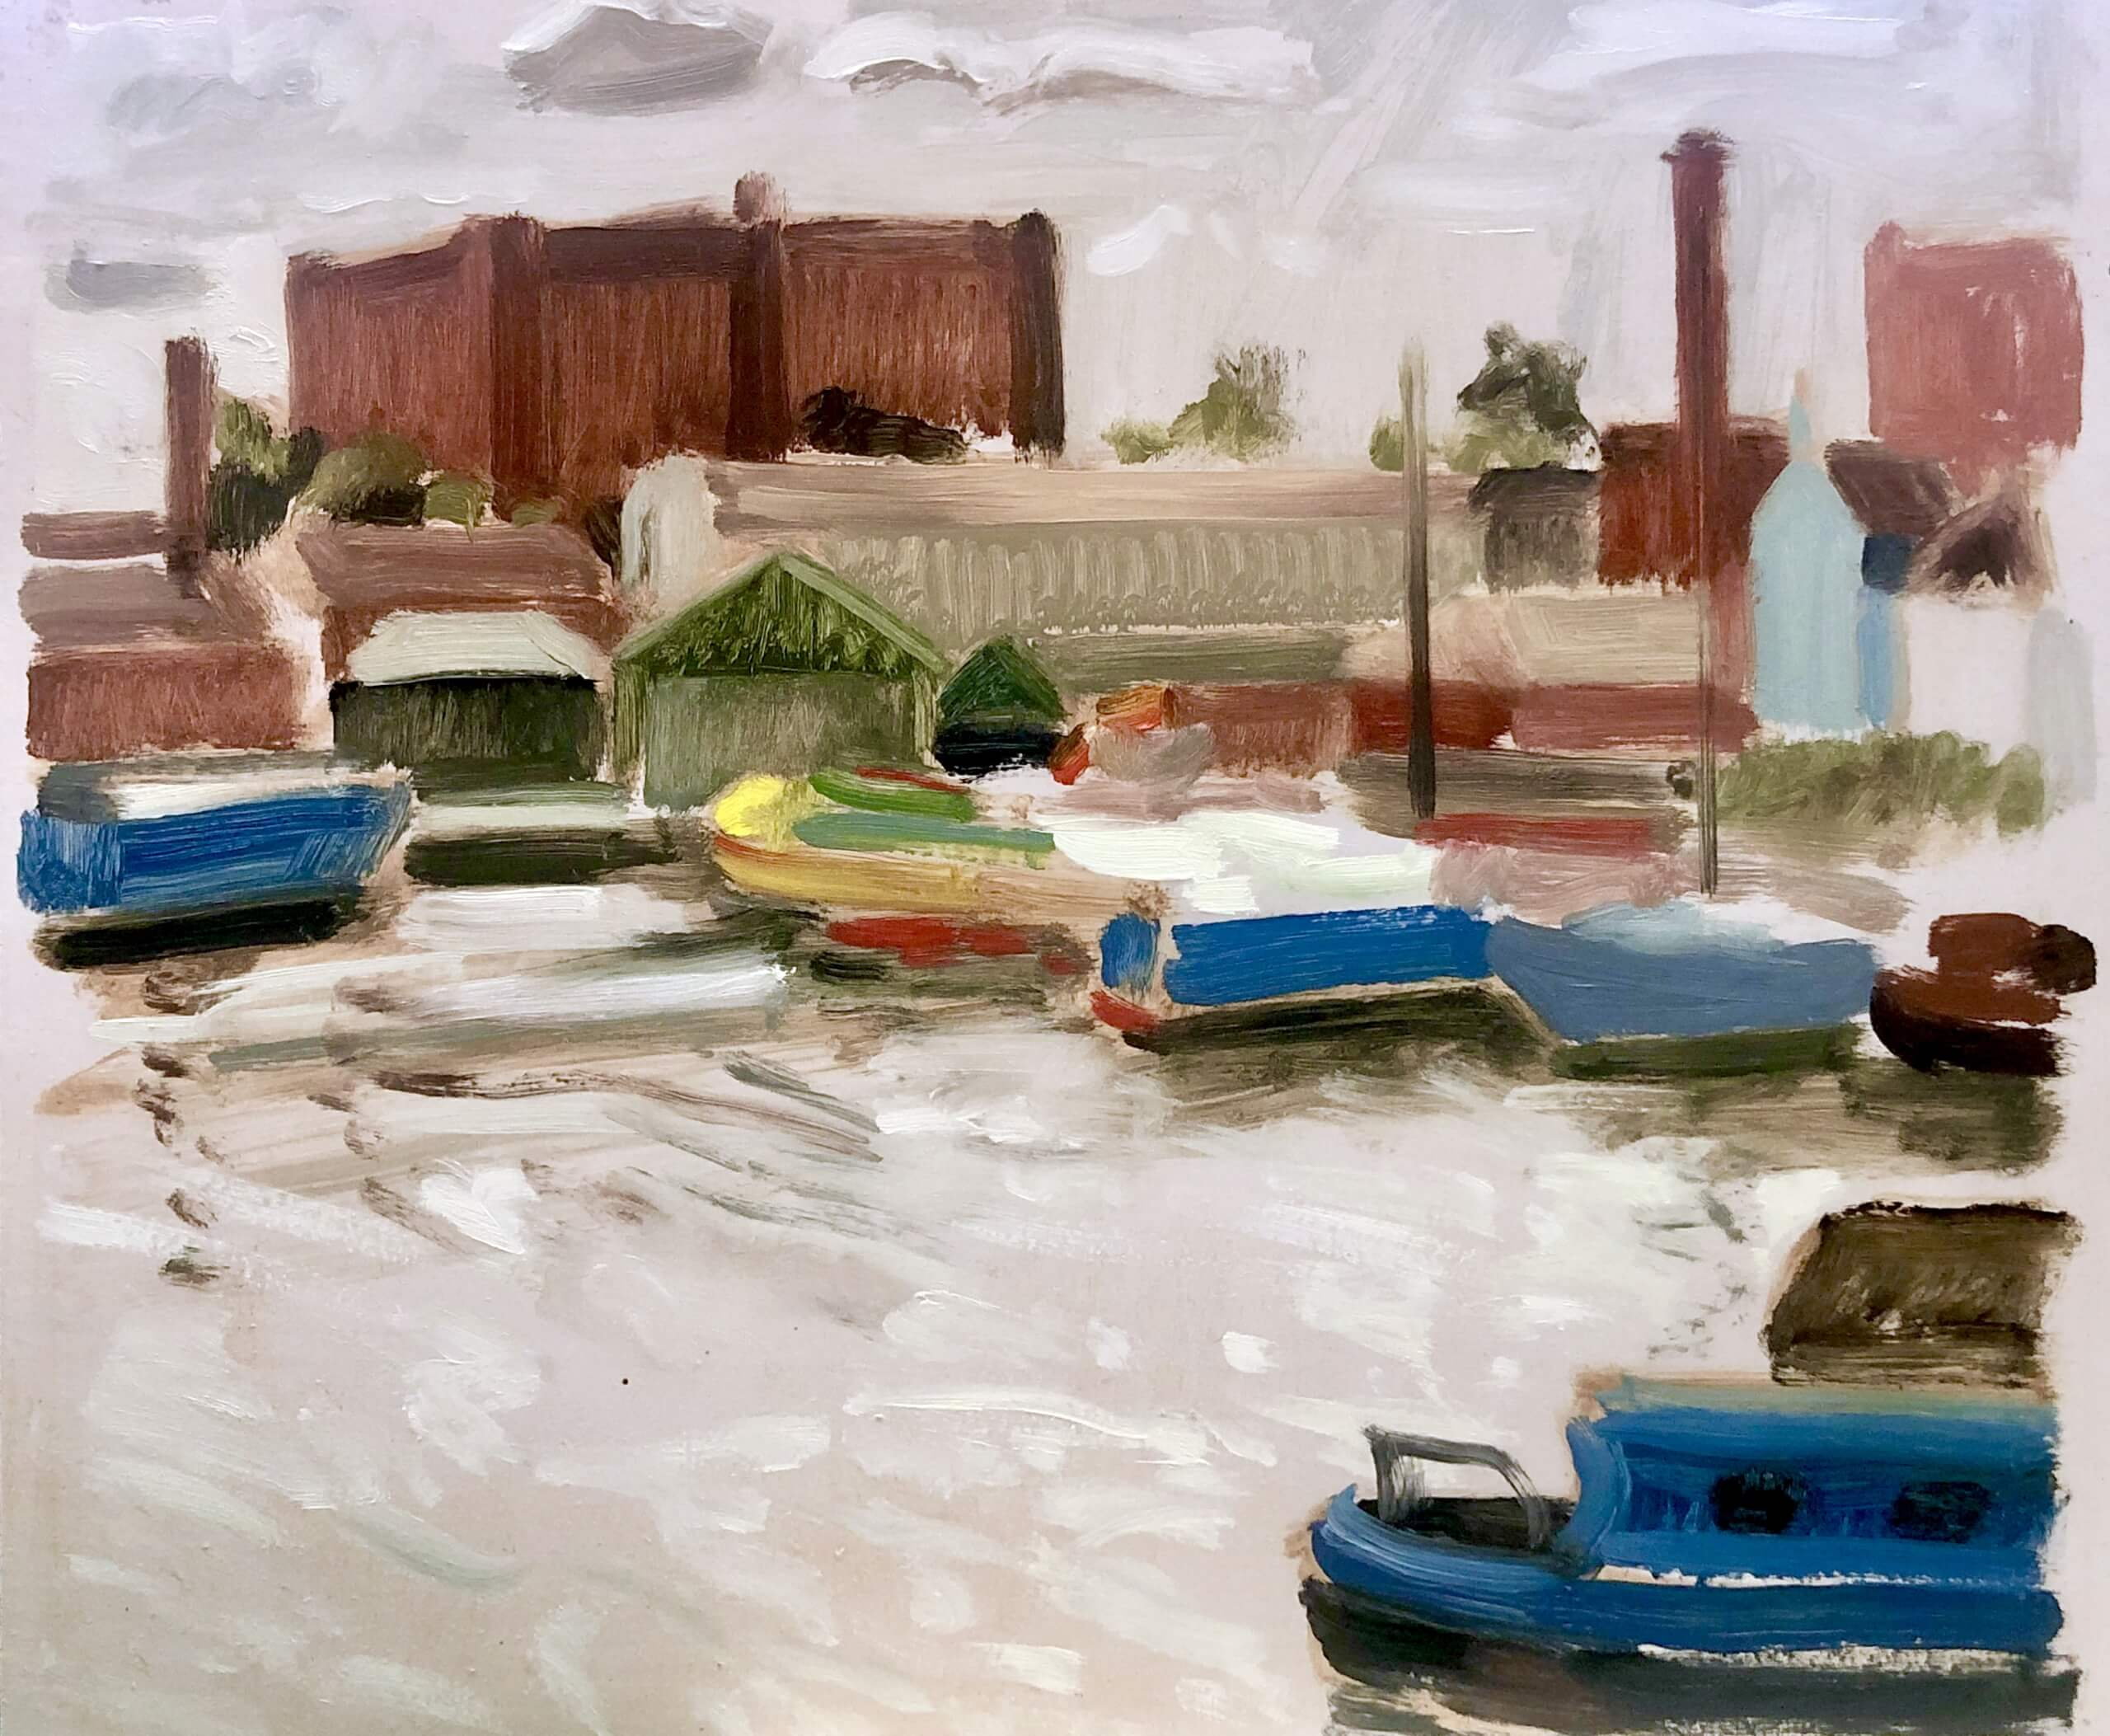 an oil painting of Underfall Yard in the dockland area of Bristol